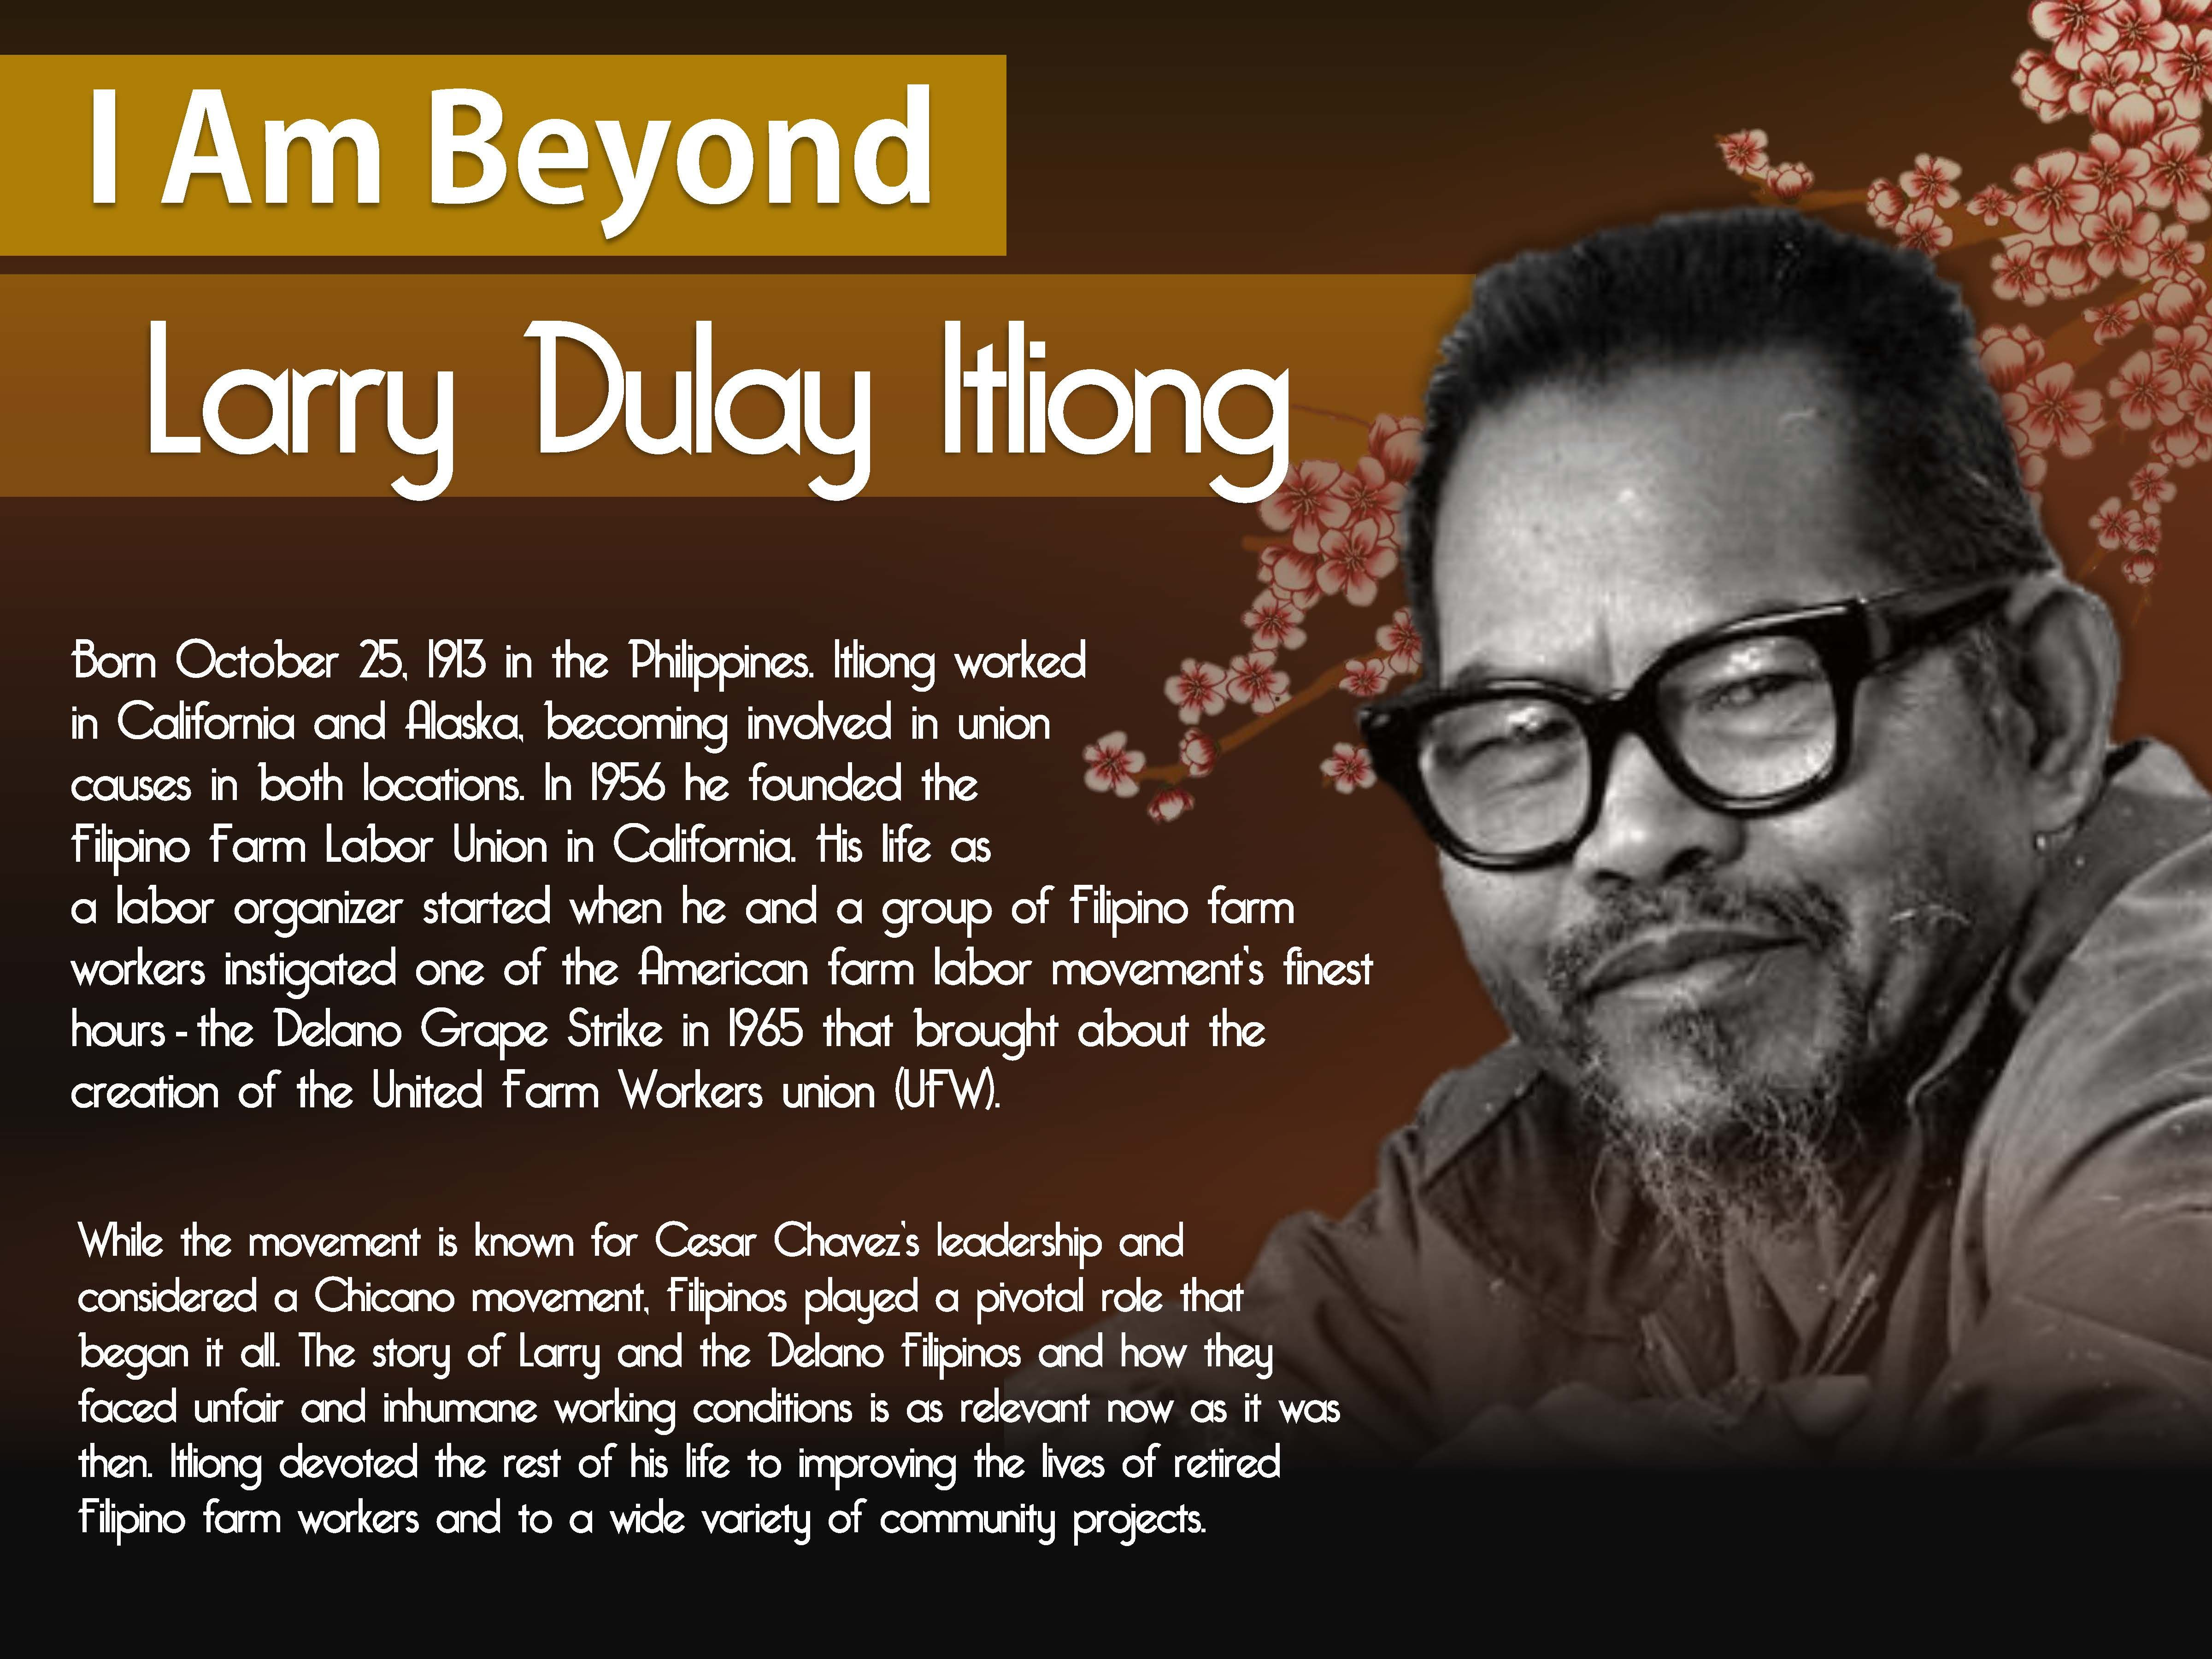 Larry Dulay Itliong